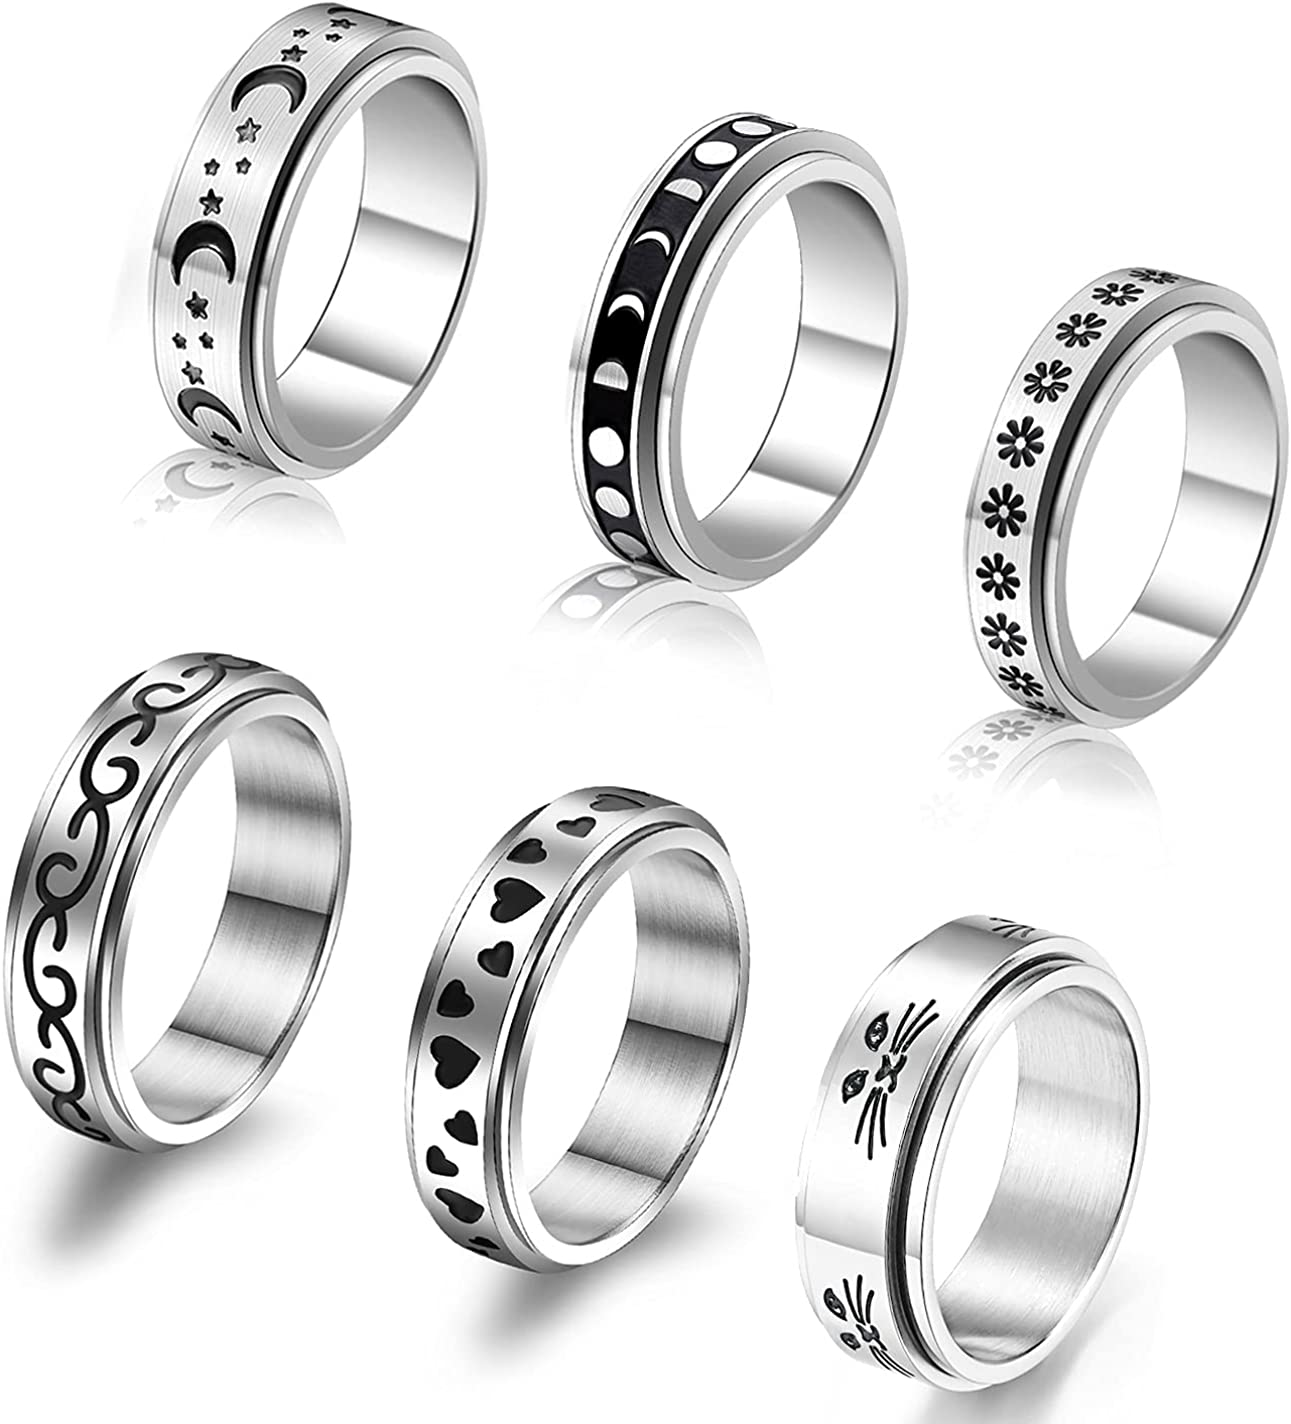 CASDAN 6Pcs 6Pcs Stainless Steel Spinner Ring for Women Mens Fidget Band Cool Rings Moon Star Celtic Stress Relieving Wide Wedding Promise Rings Set Size 6-10